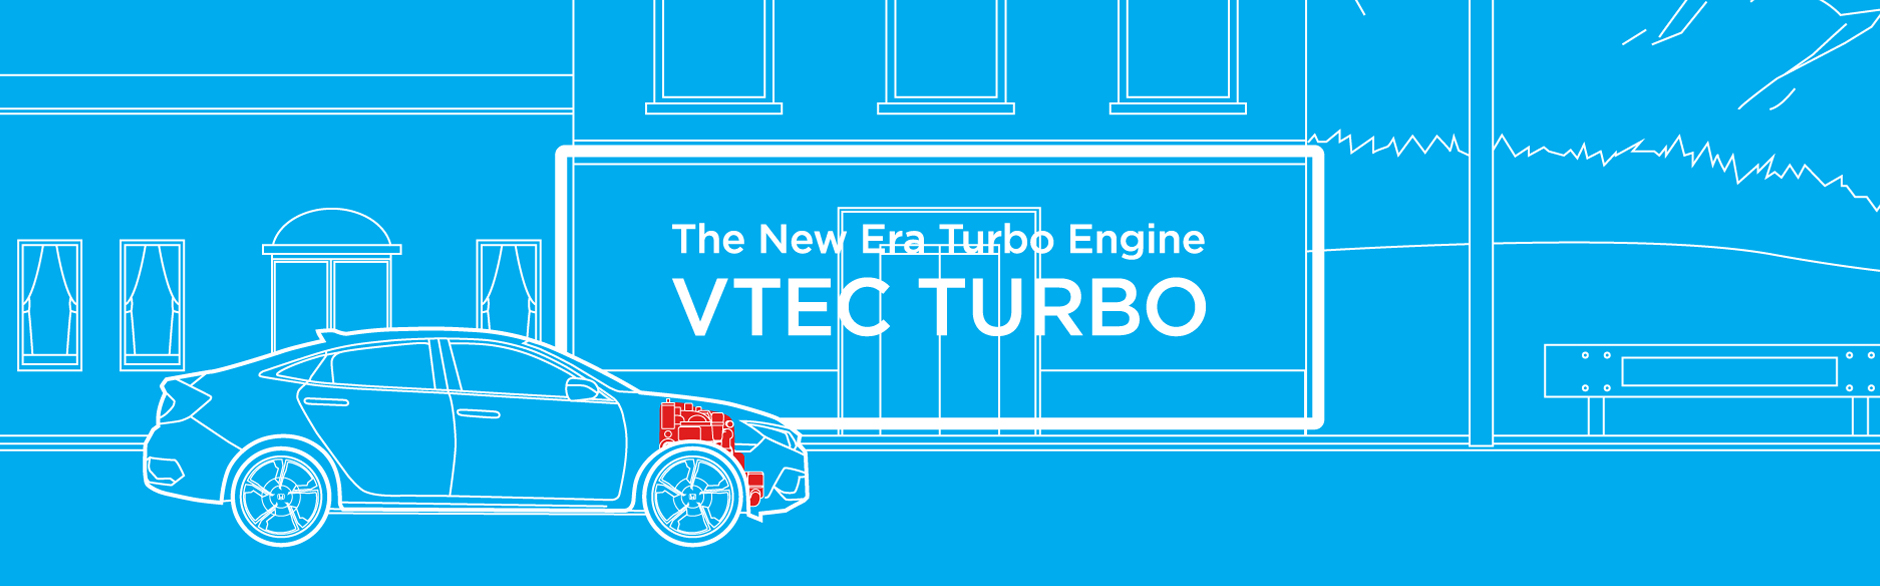 Honda Global | VTEC TURBO - Picture Book